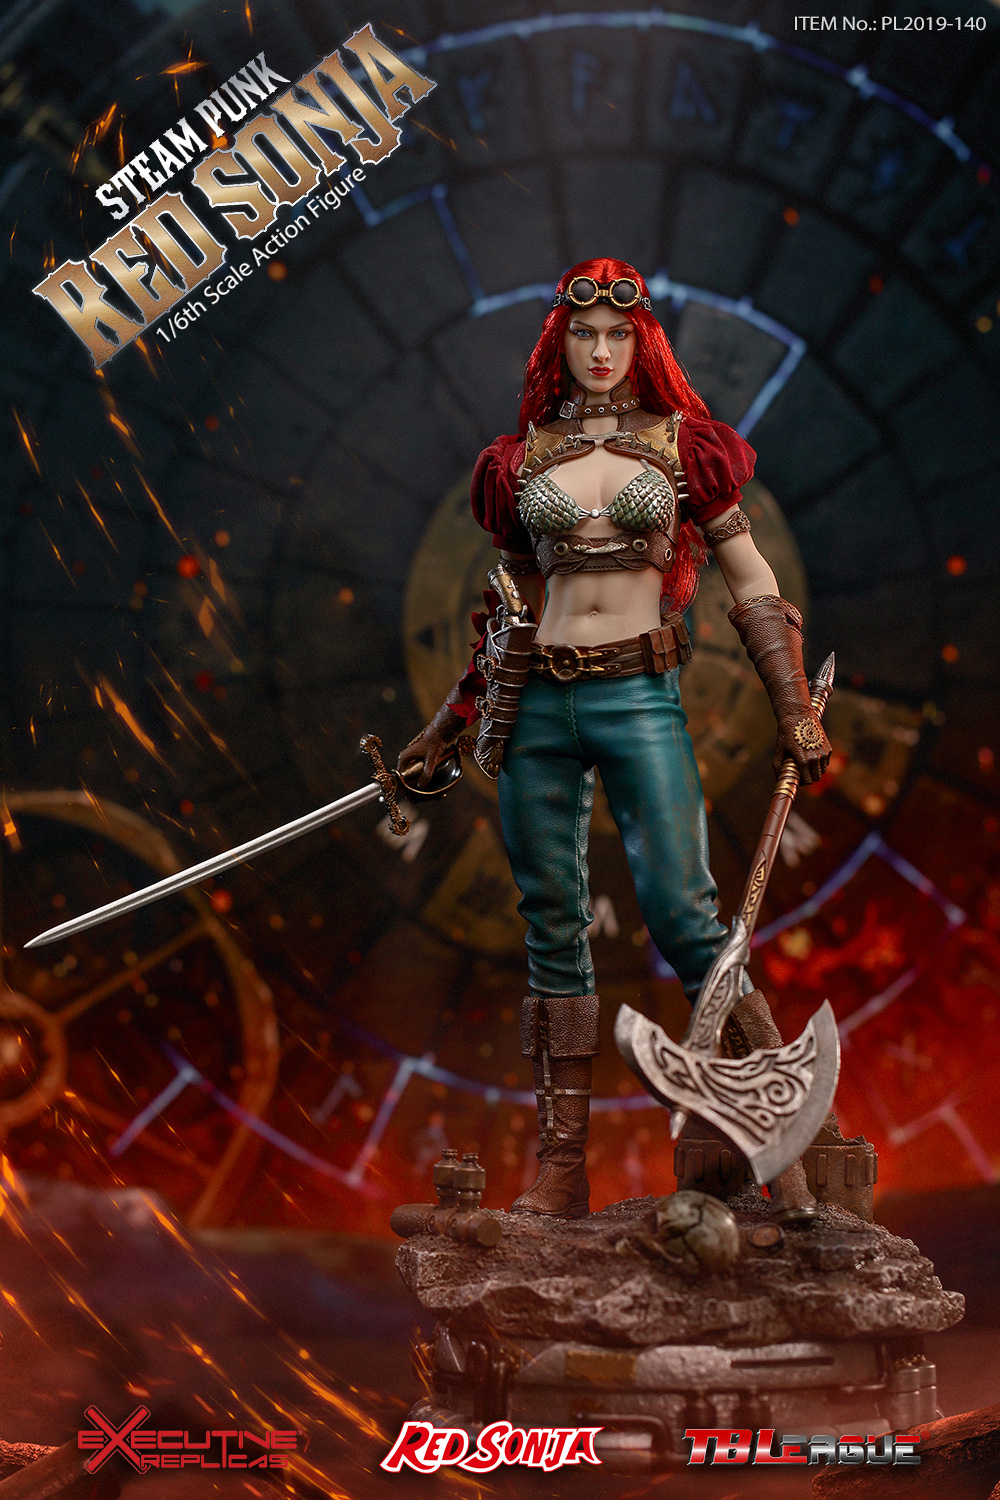 steampunk - NEW PRODUCT: TBLeague: 1/6 Steam Punk - Red Sonja / Queen Excalibur [punk version] PL2019-140-A/B 20192411